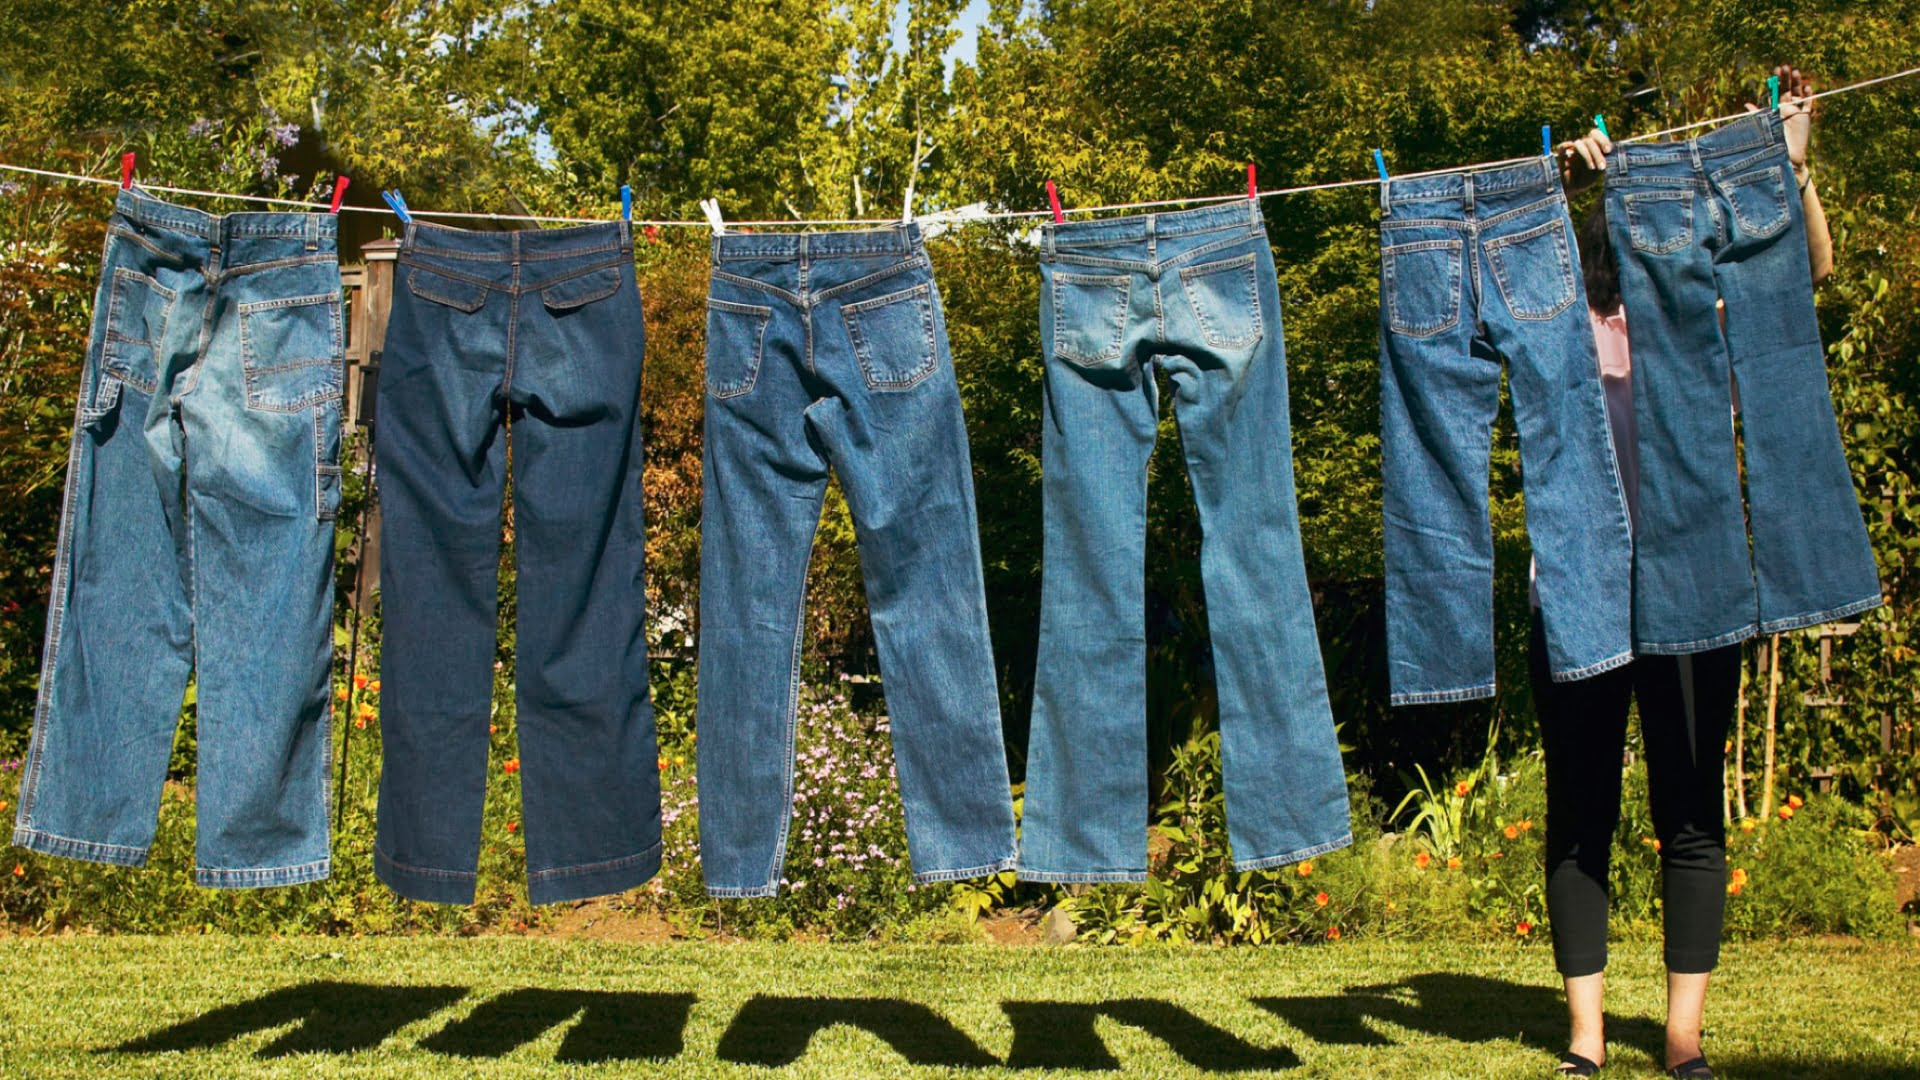 Stop washing your jeans.